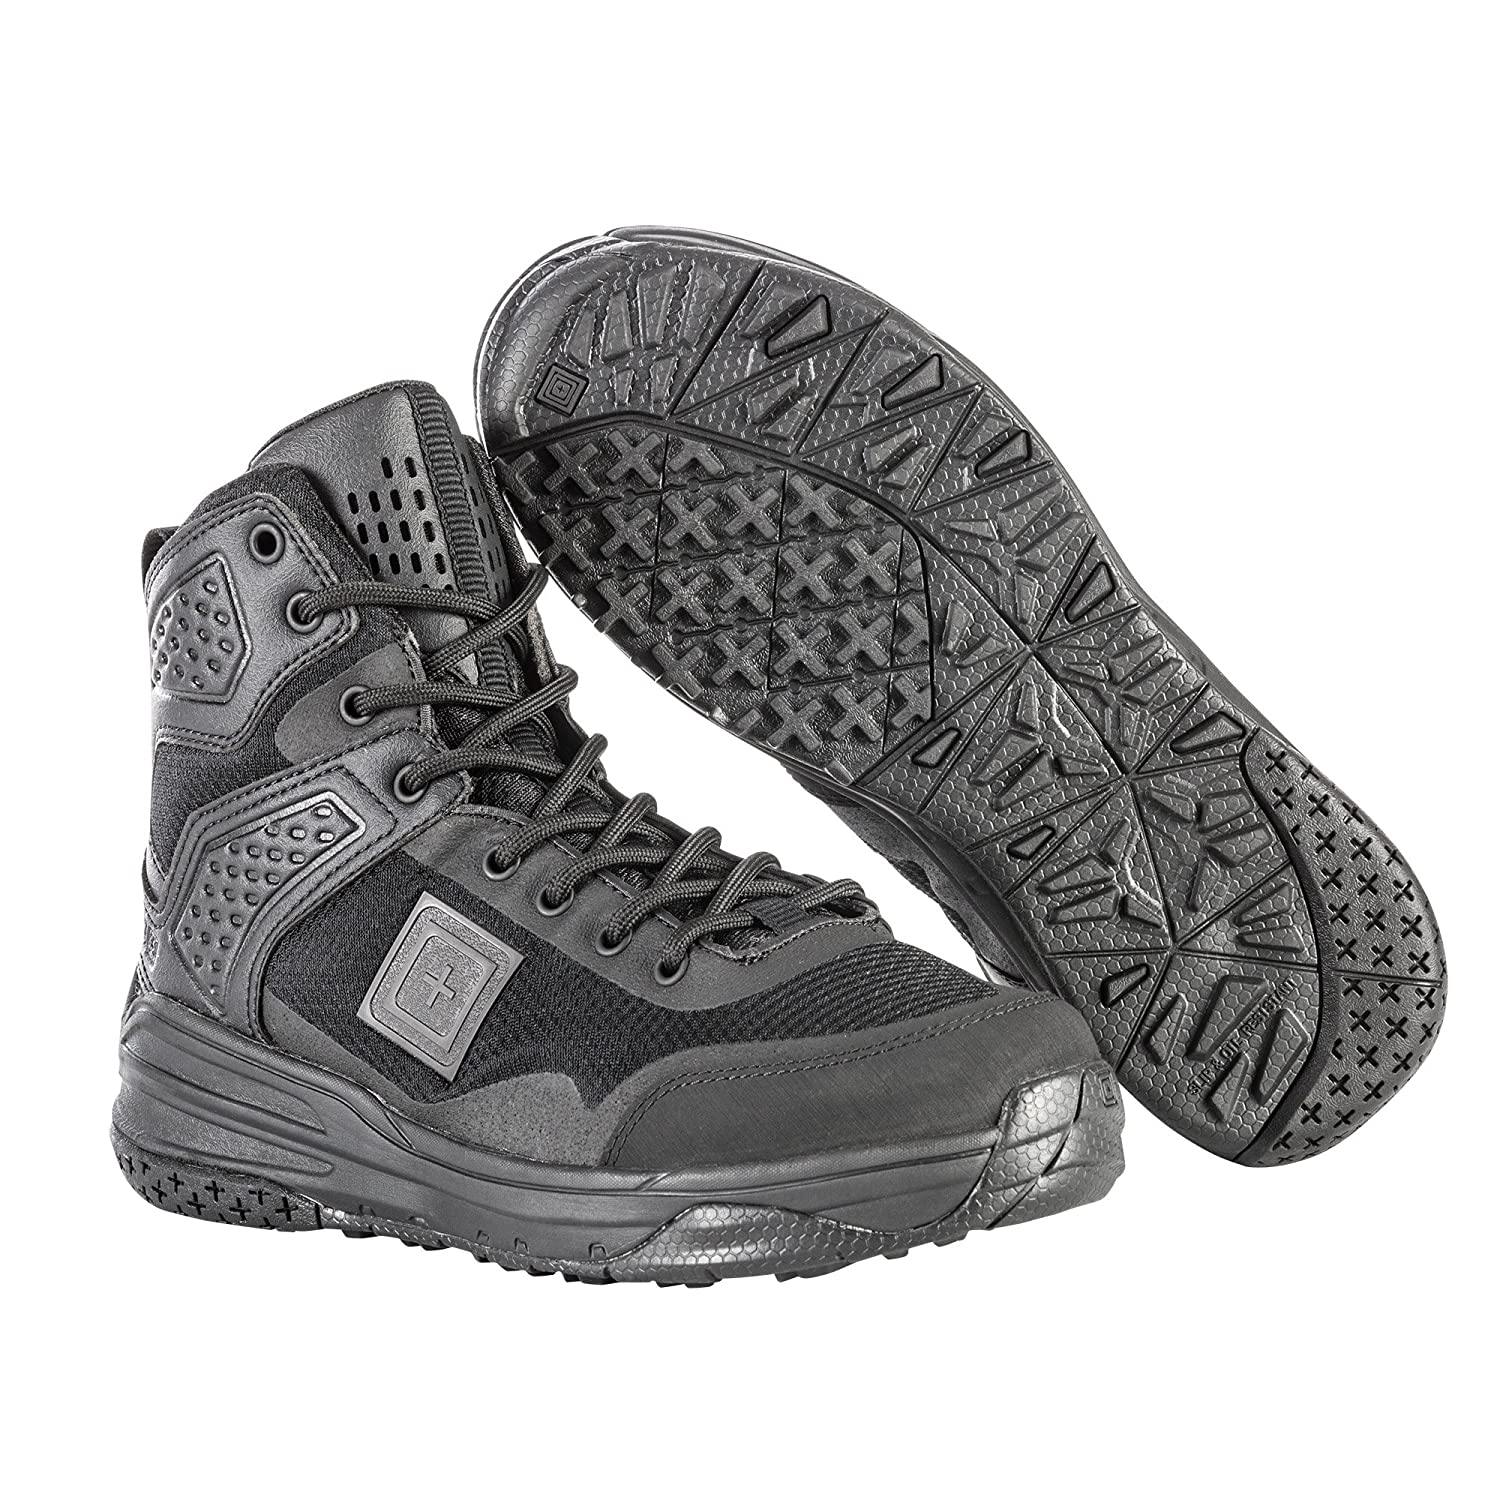 5.11 Tactical Mens Halcyon Tactical Stealth Boots Military